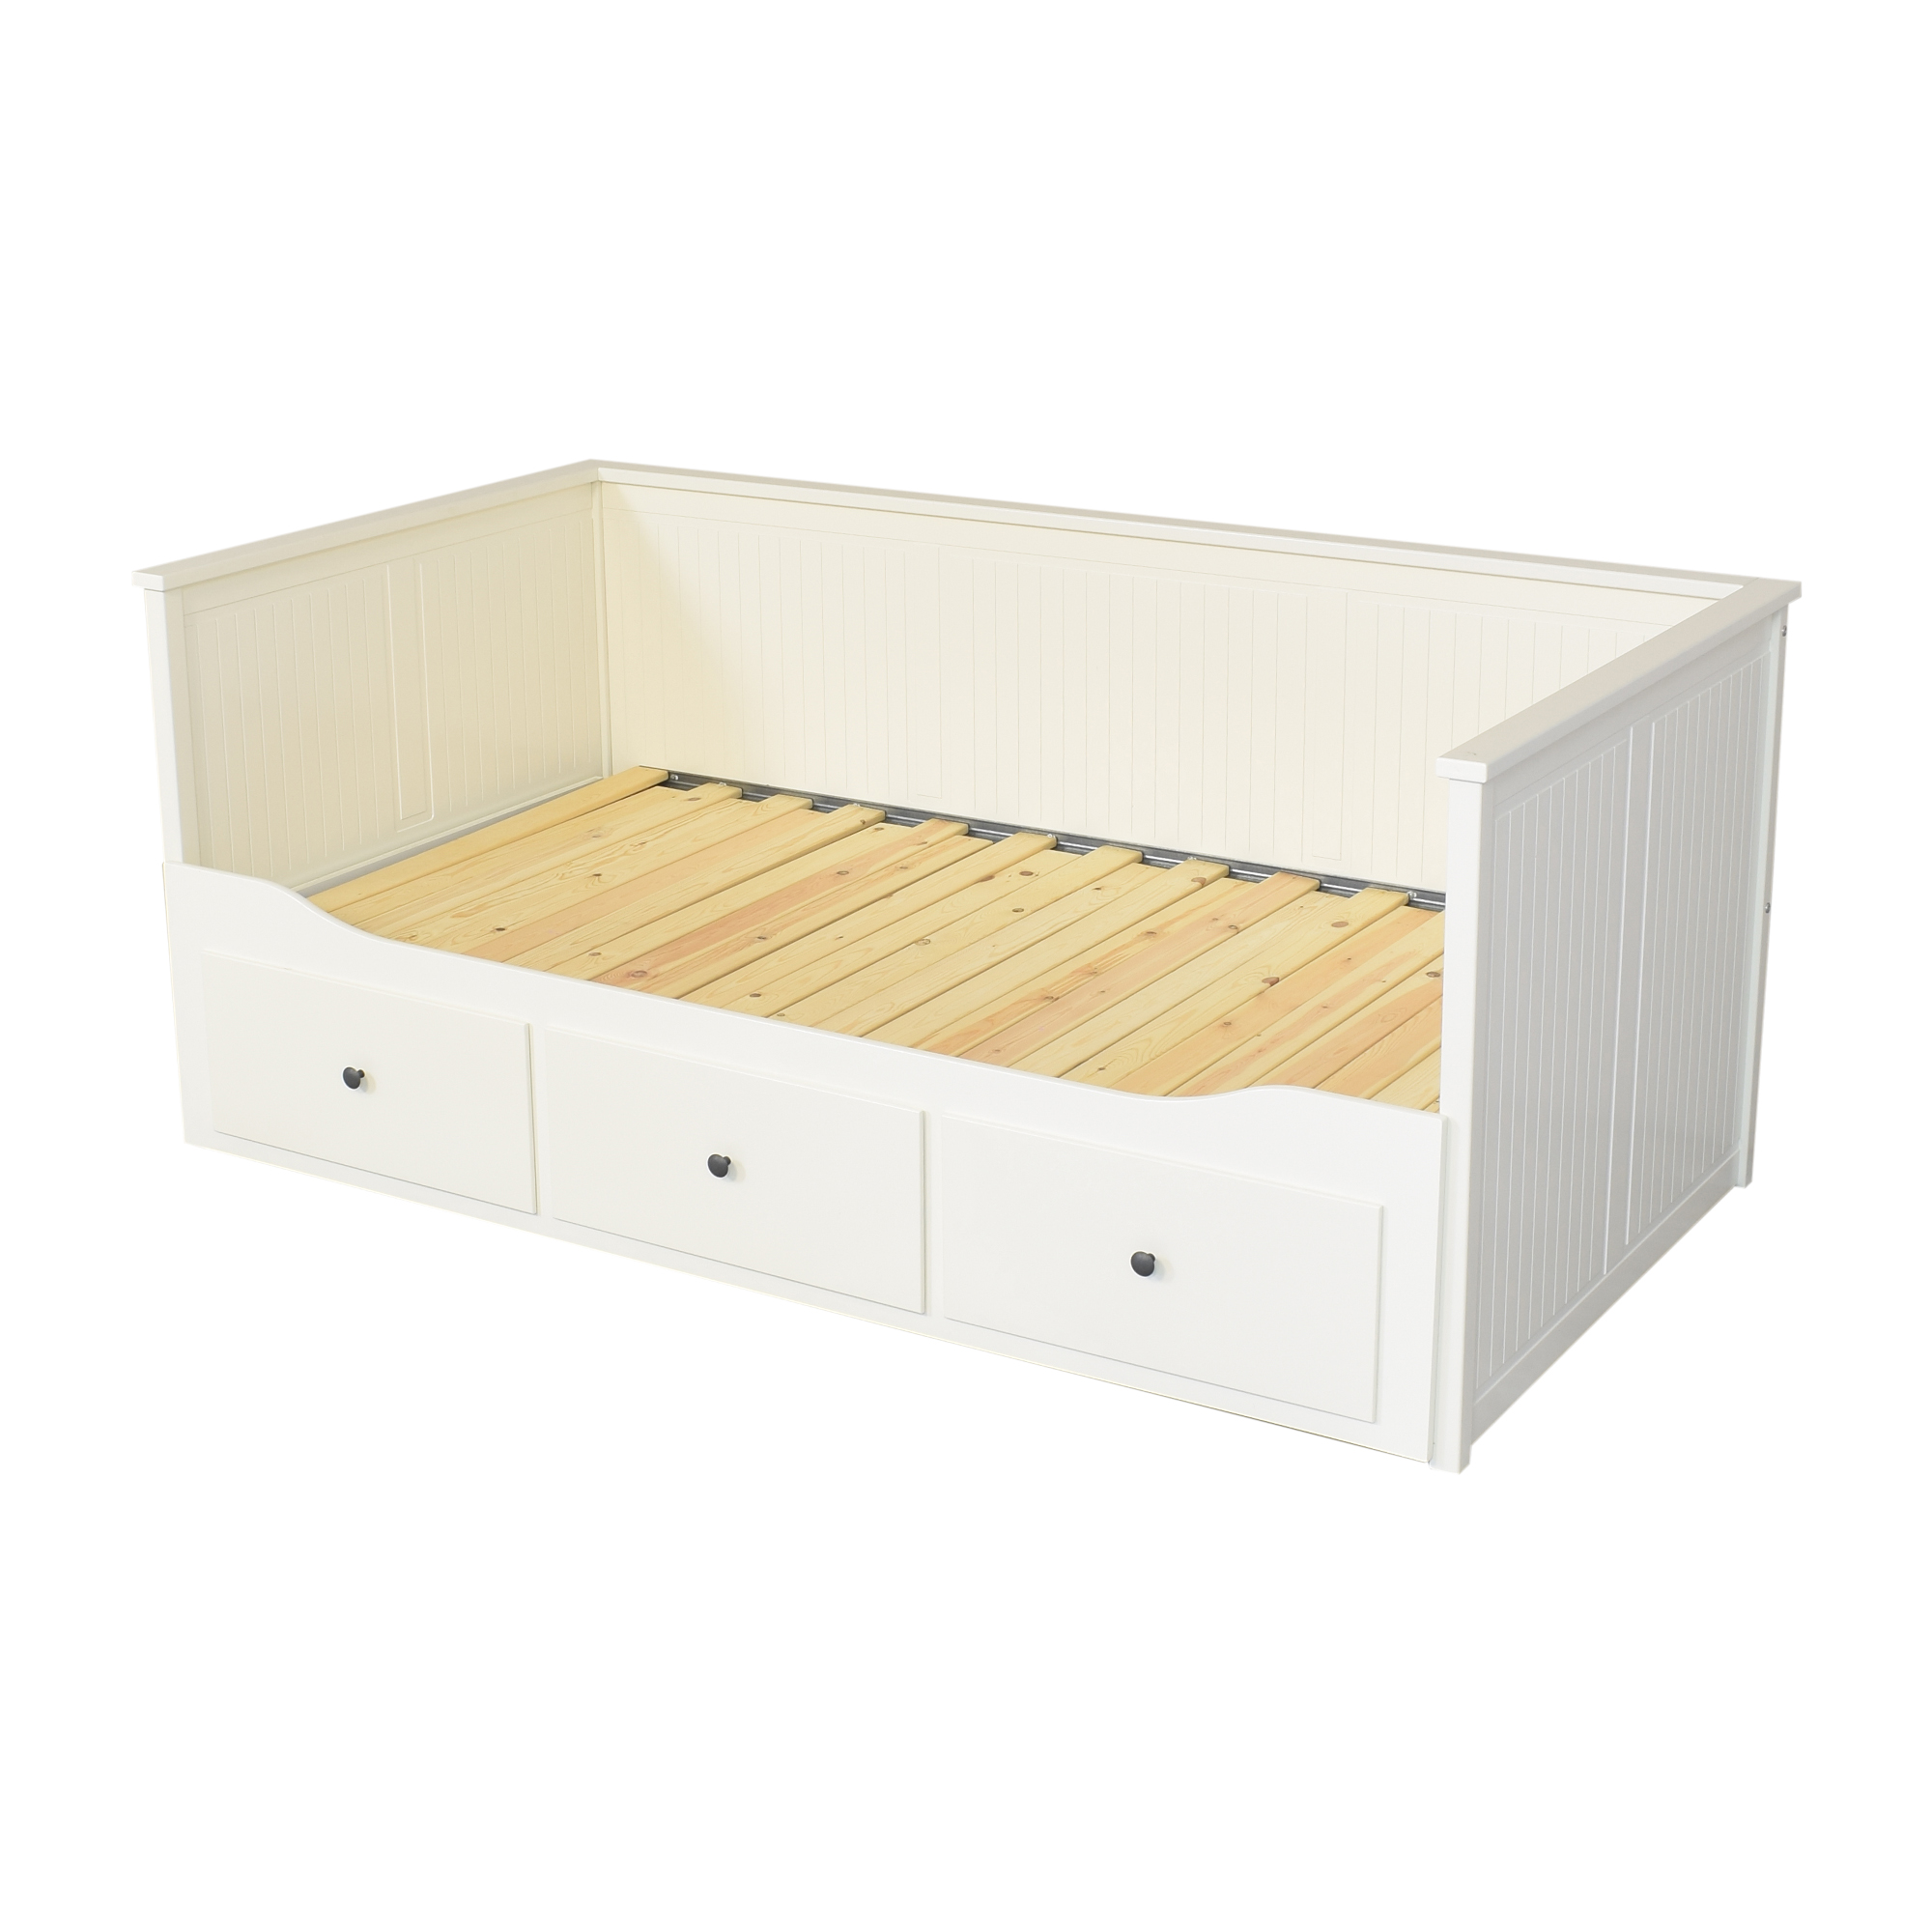 IKEA IKEA HEMNES Storage Daybed with Trundle second hand